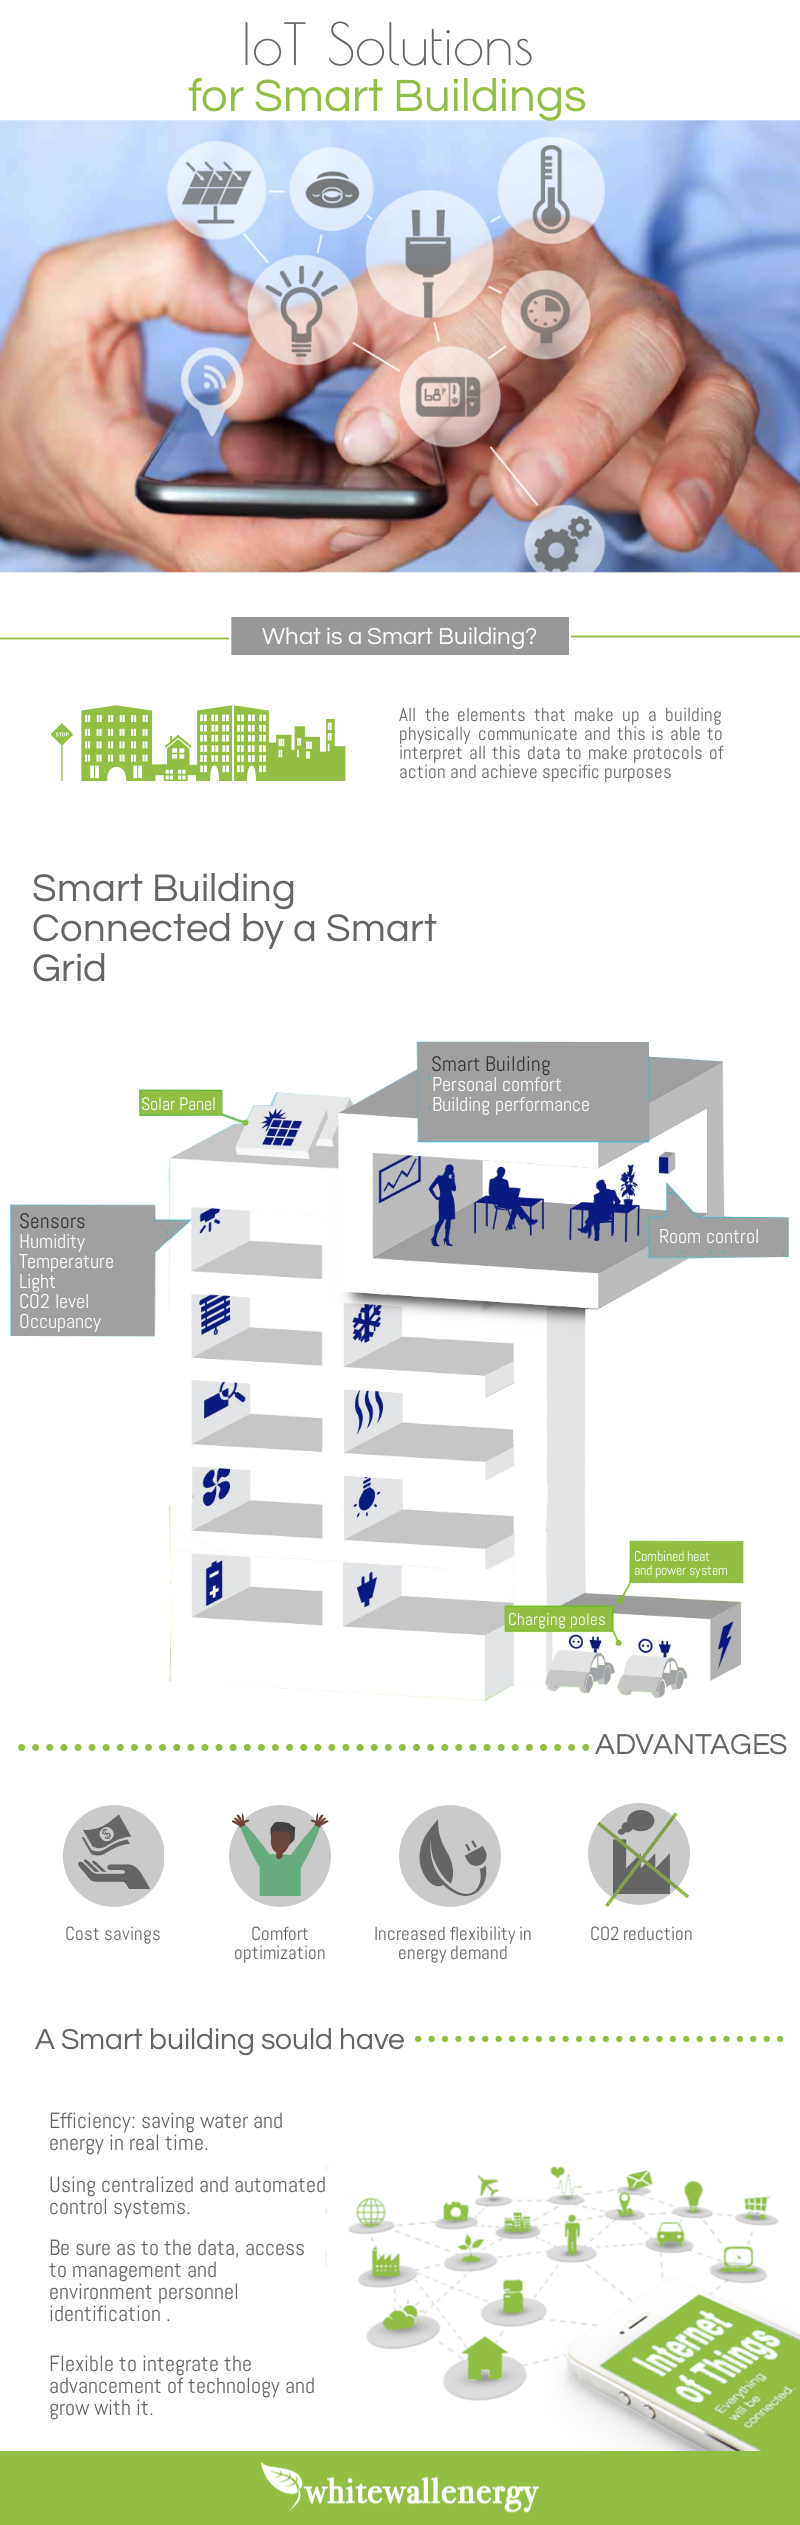 [Infographic] IoT solutions for Smart Buildings